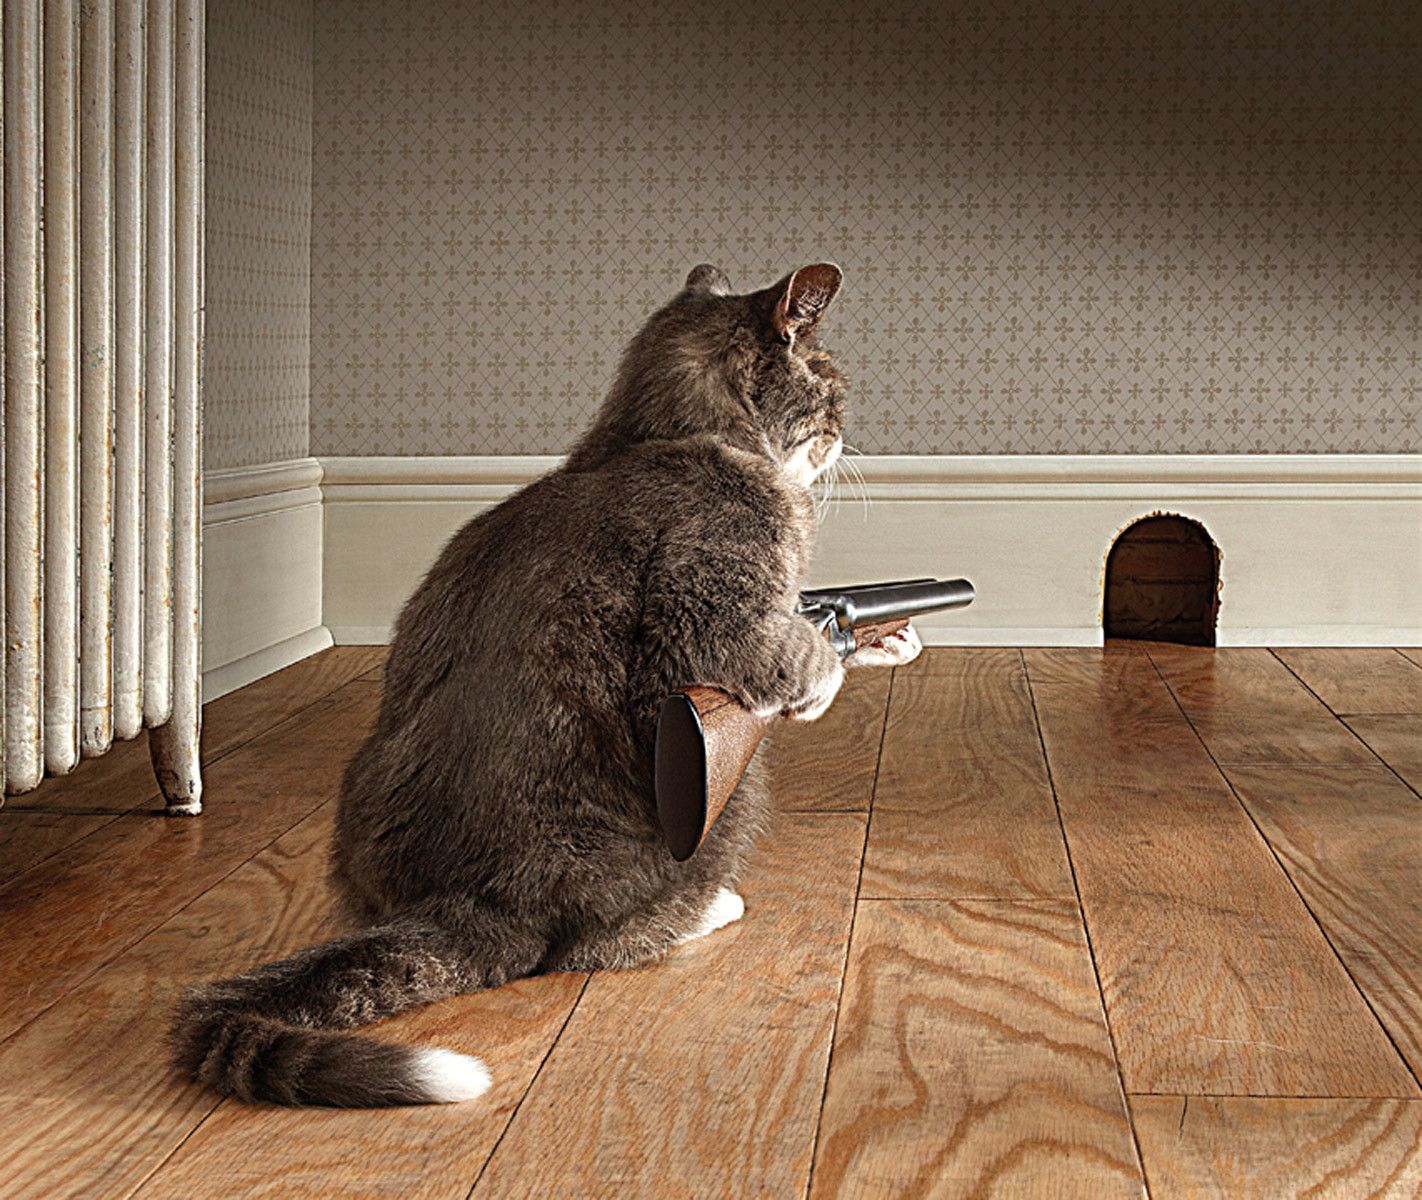 Cat with Shotgun - Syngenta